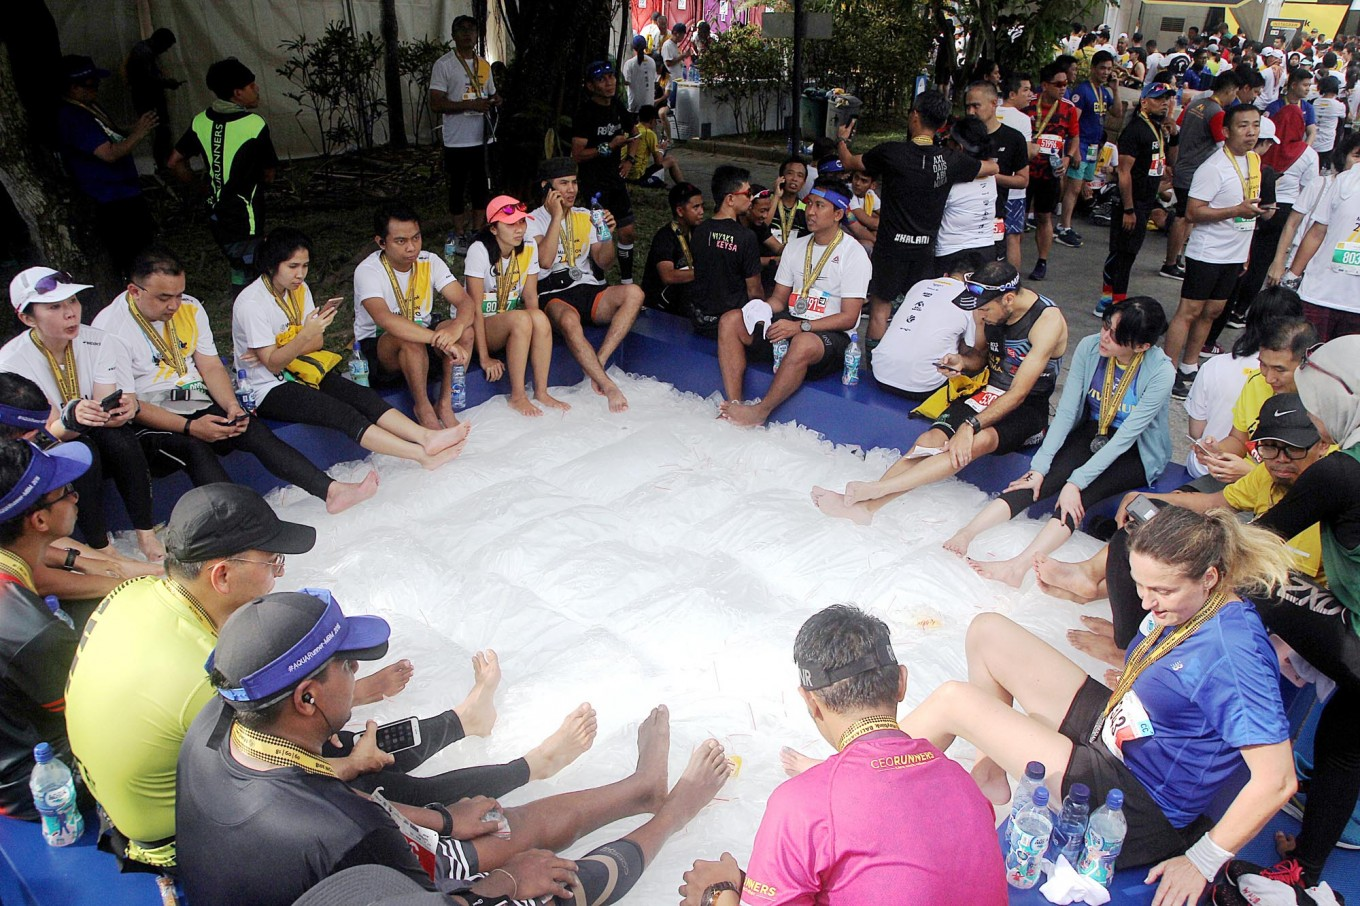 Cooling down: Runners lay their feet on ice cubes to reduce aches and stiffness upon completing the 2018 Maybank Bali Marathon on Sept. 9 in Gianyar, Bali.